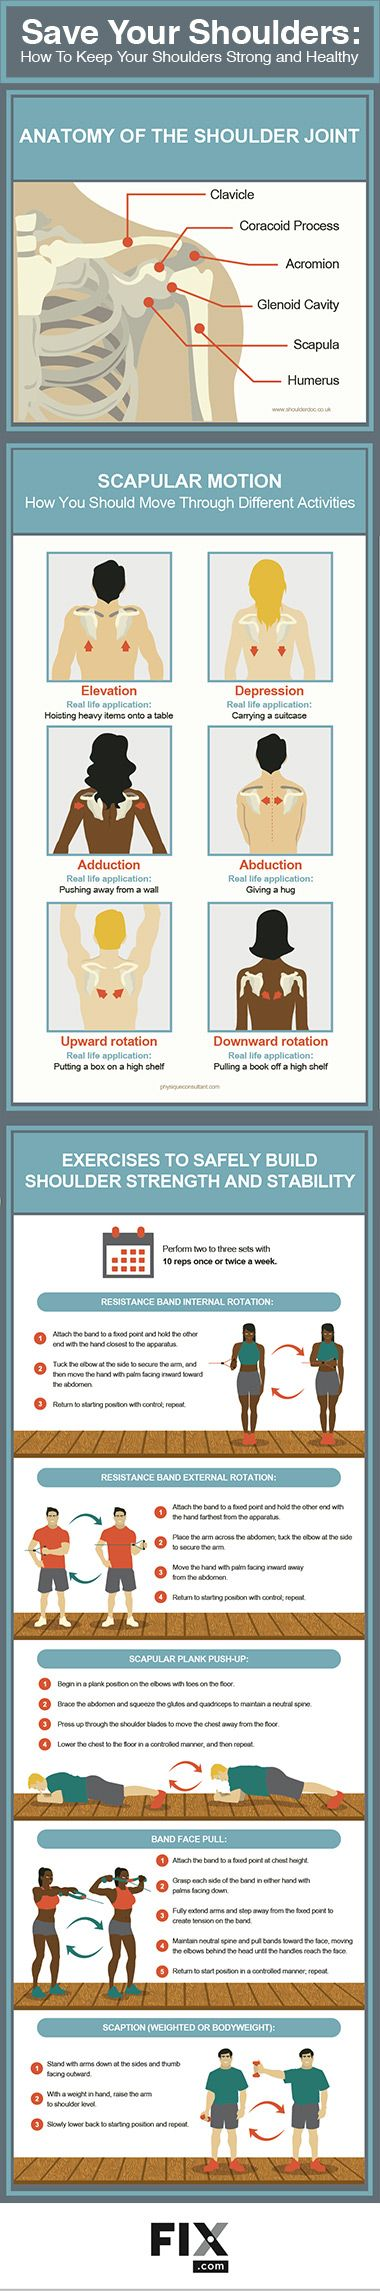 Guide to Shoulder Injuries in Women